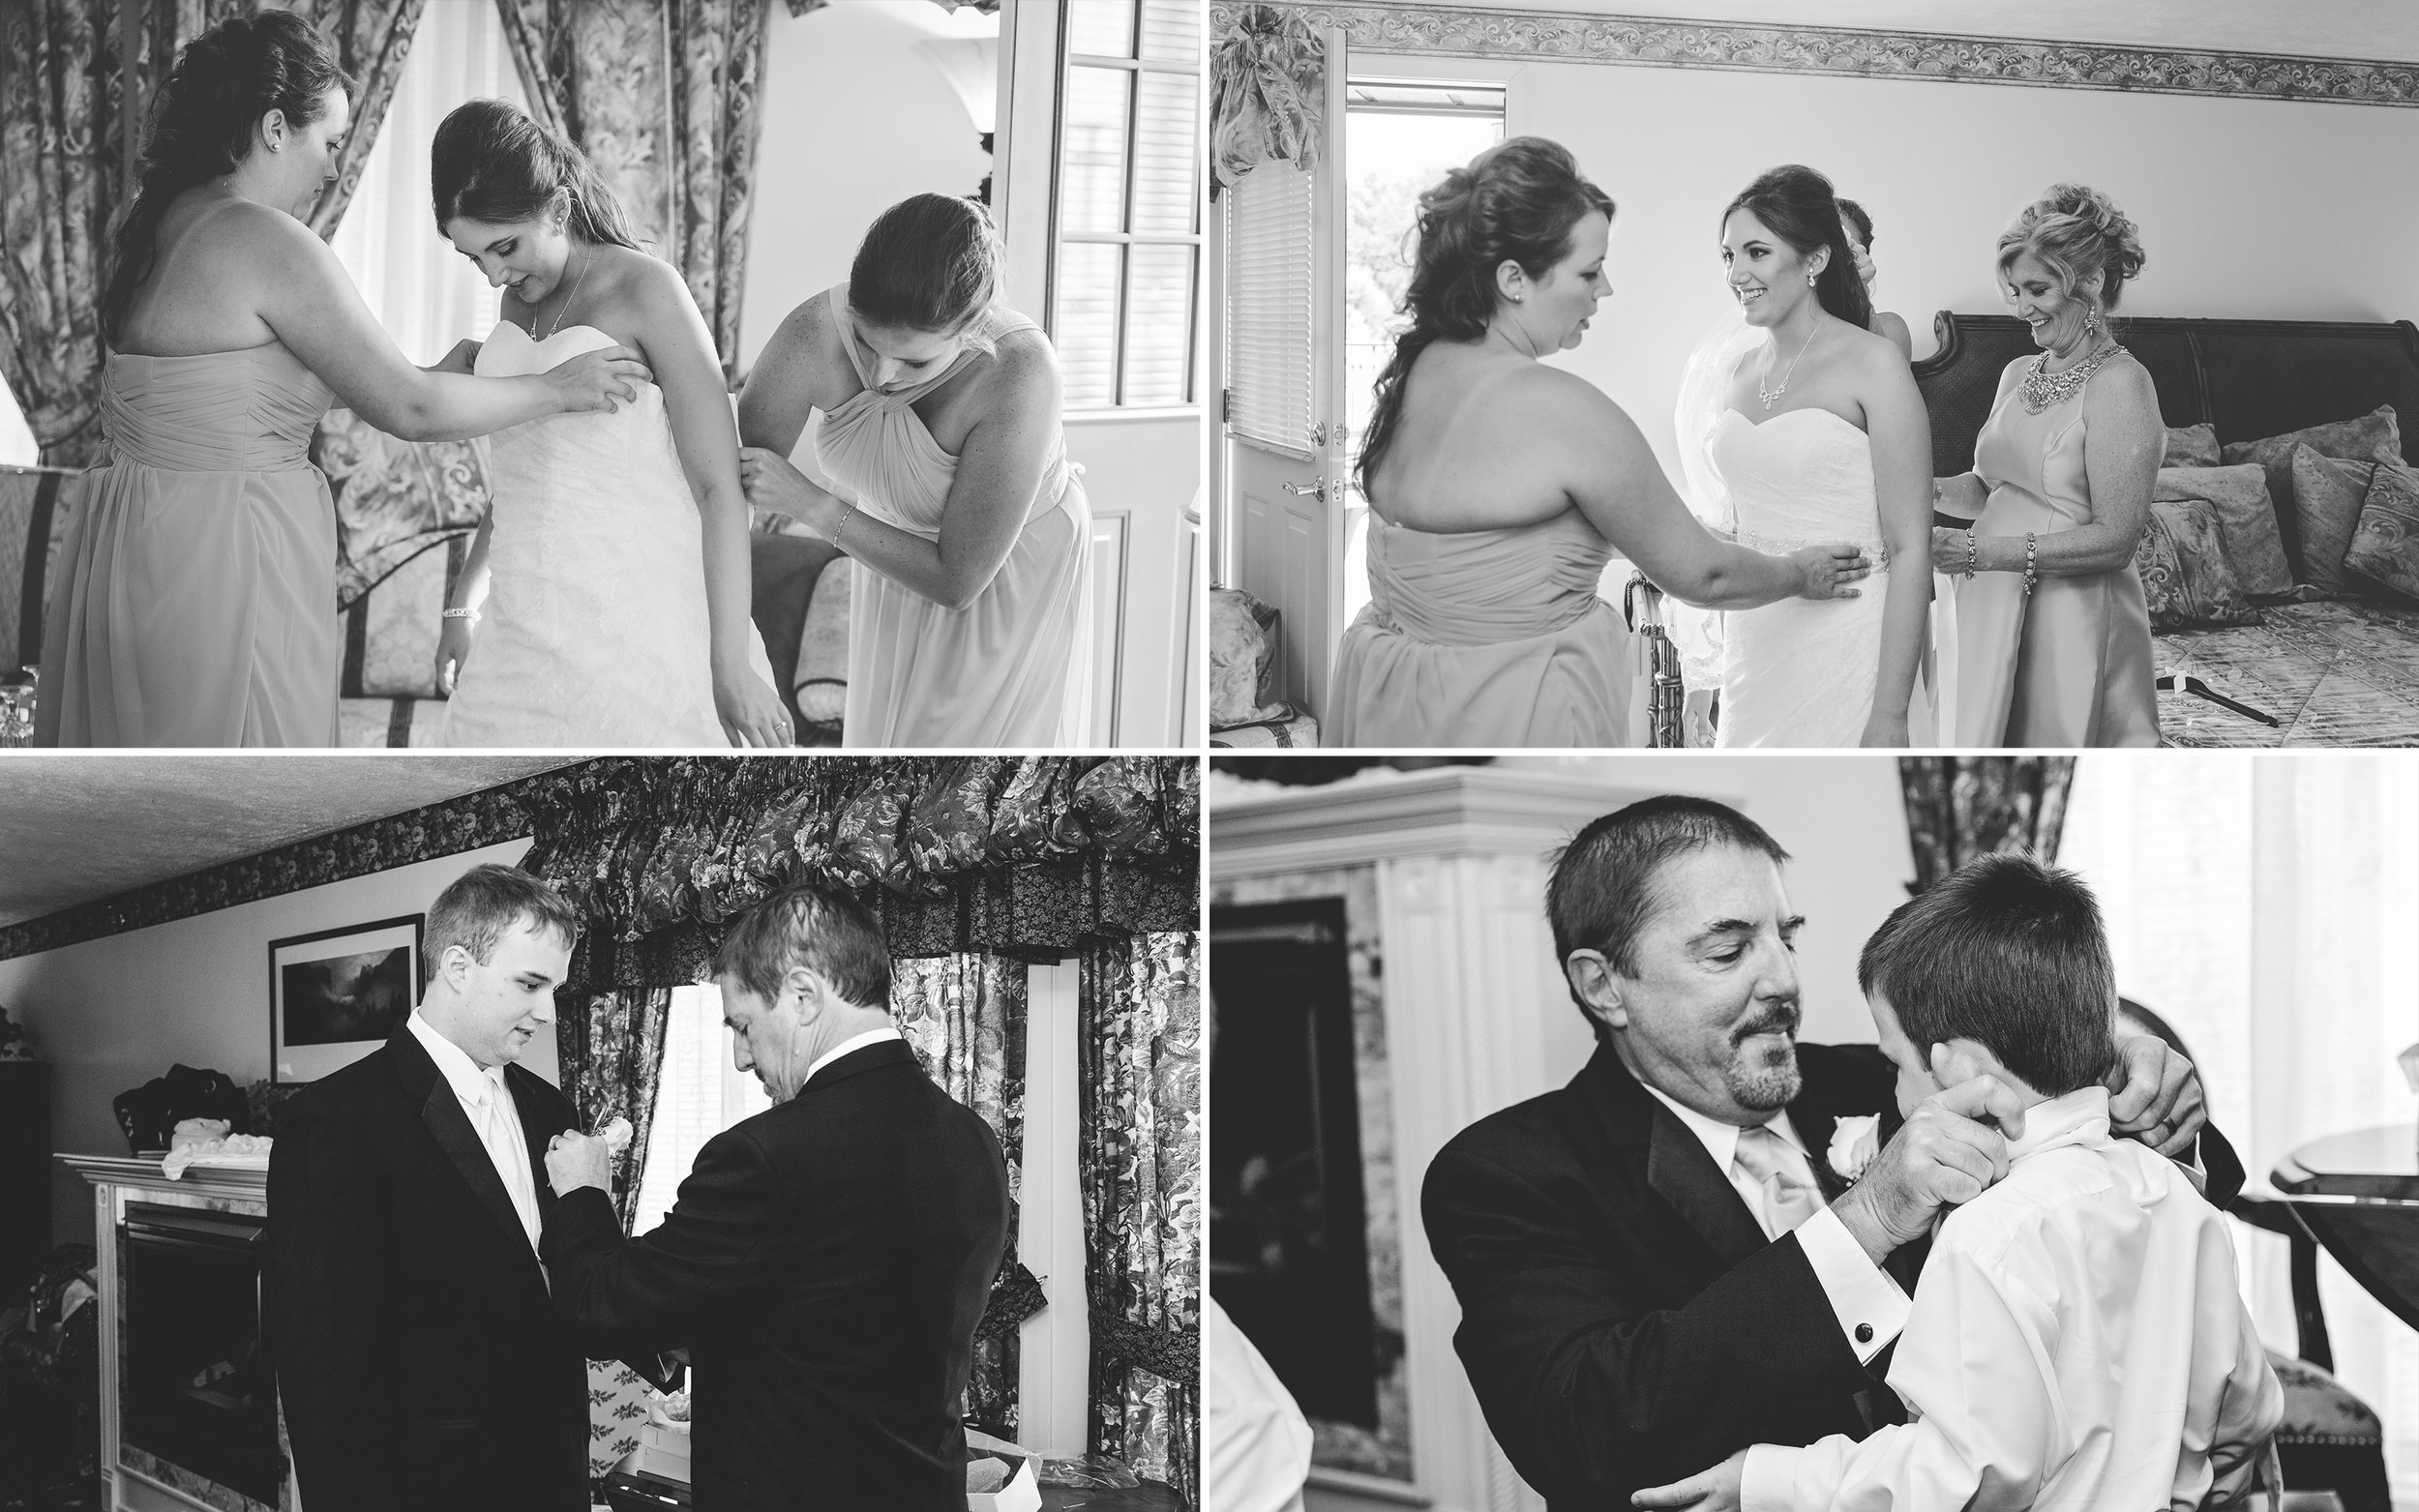 Hart_wedding_blogCollage-2.jpg